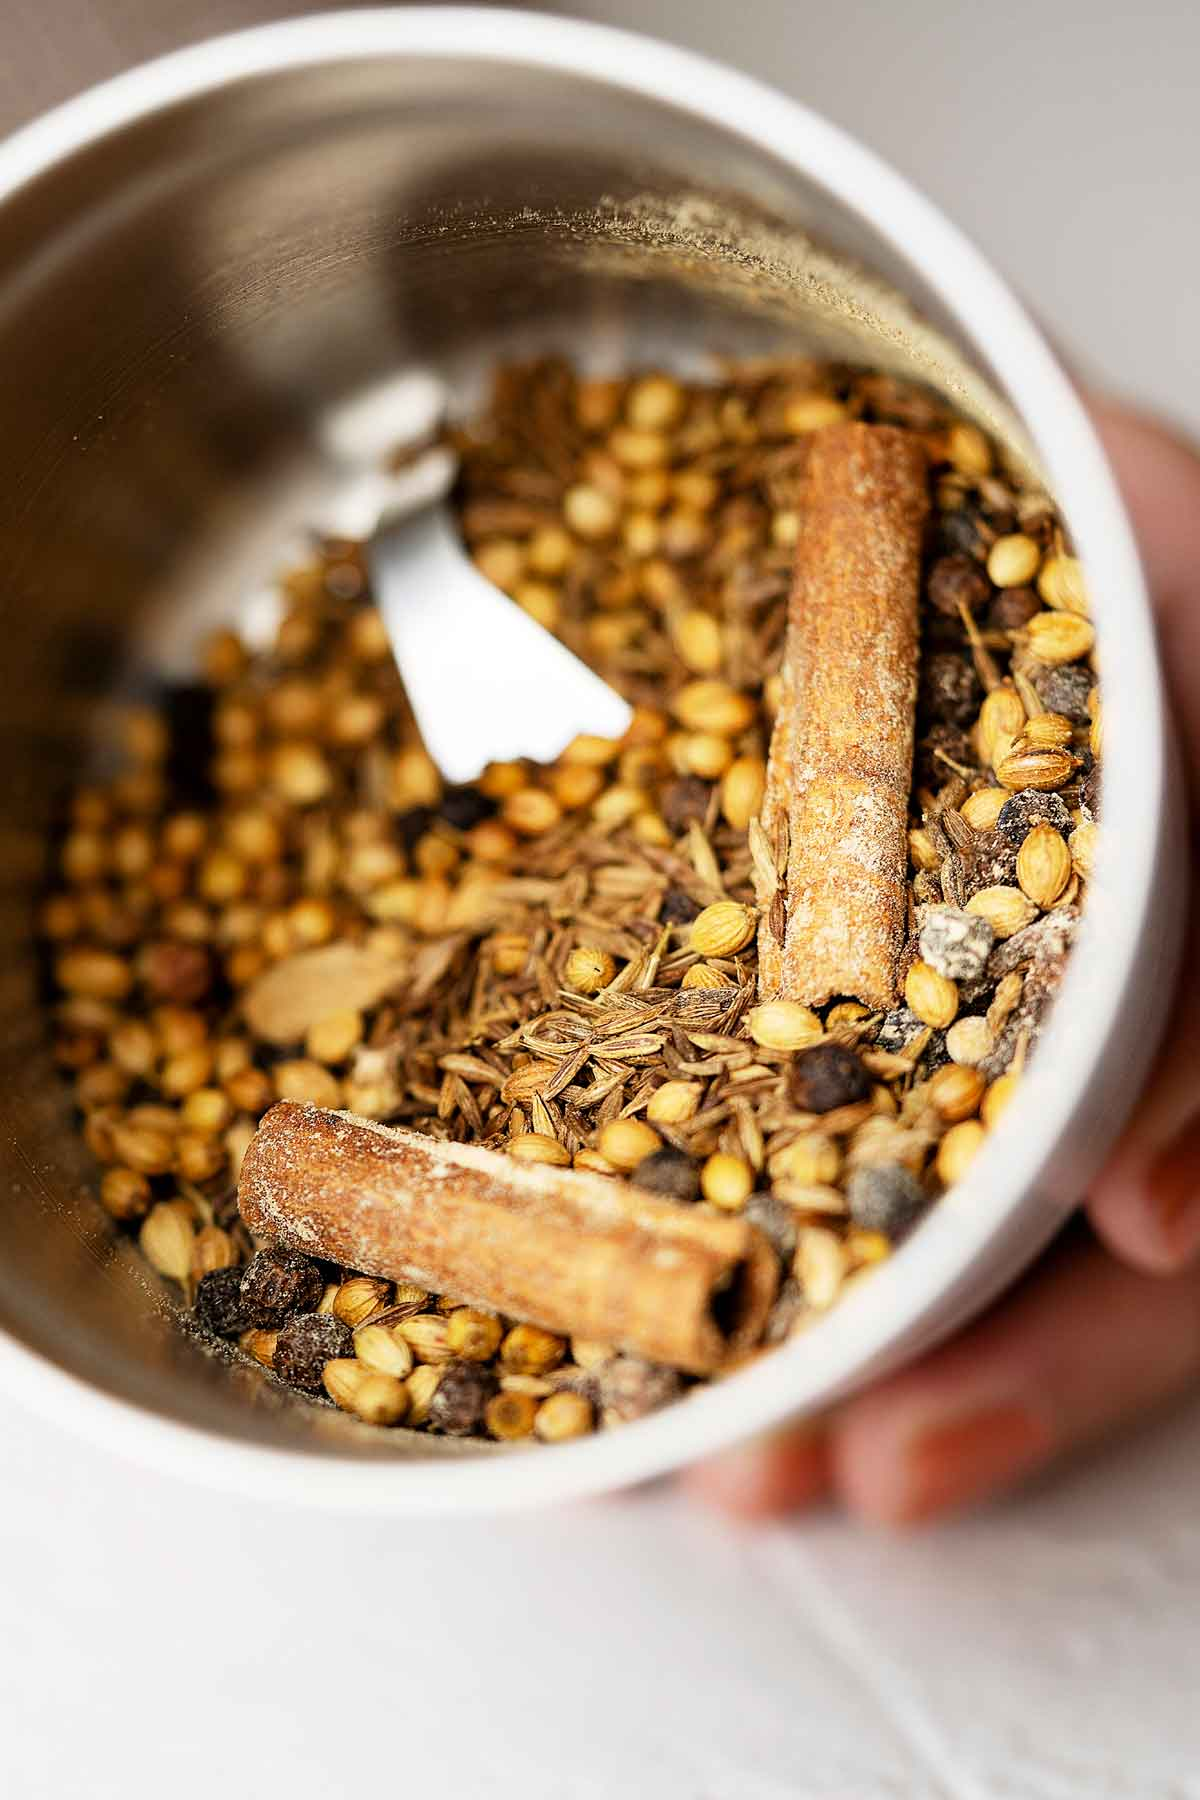 Spices for homemade garam masala in a grinder bowl